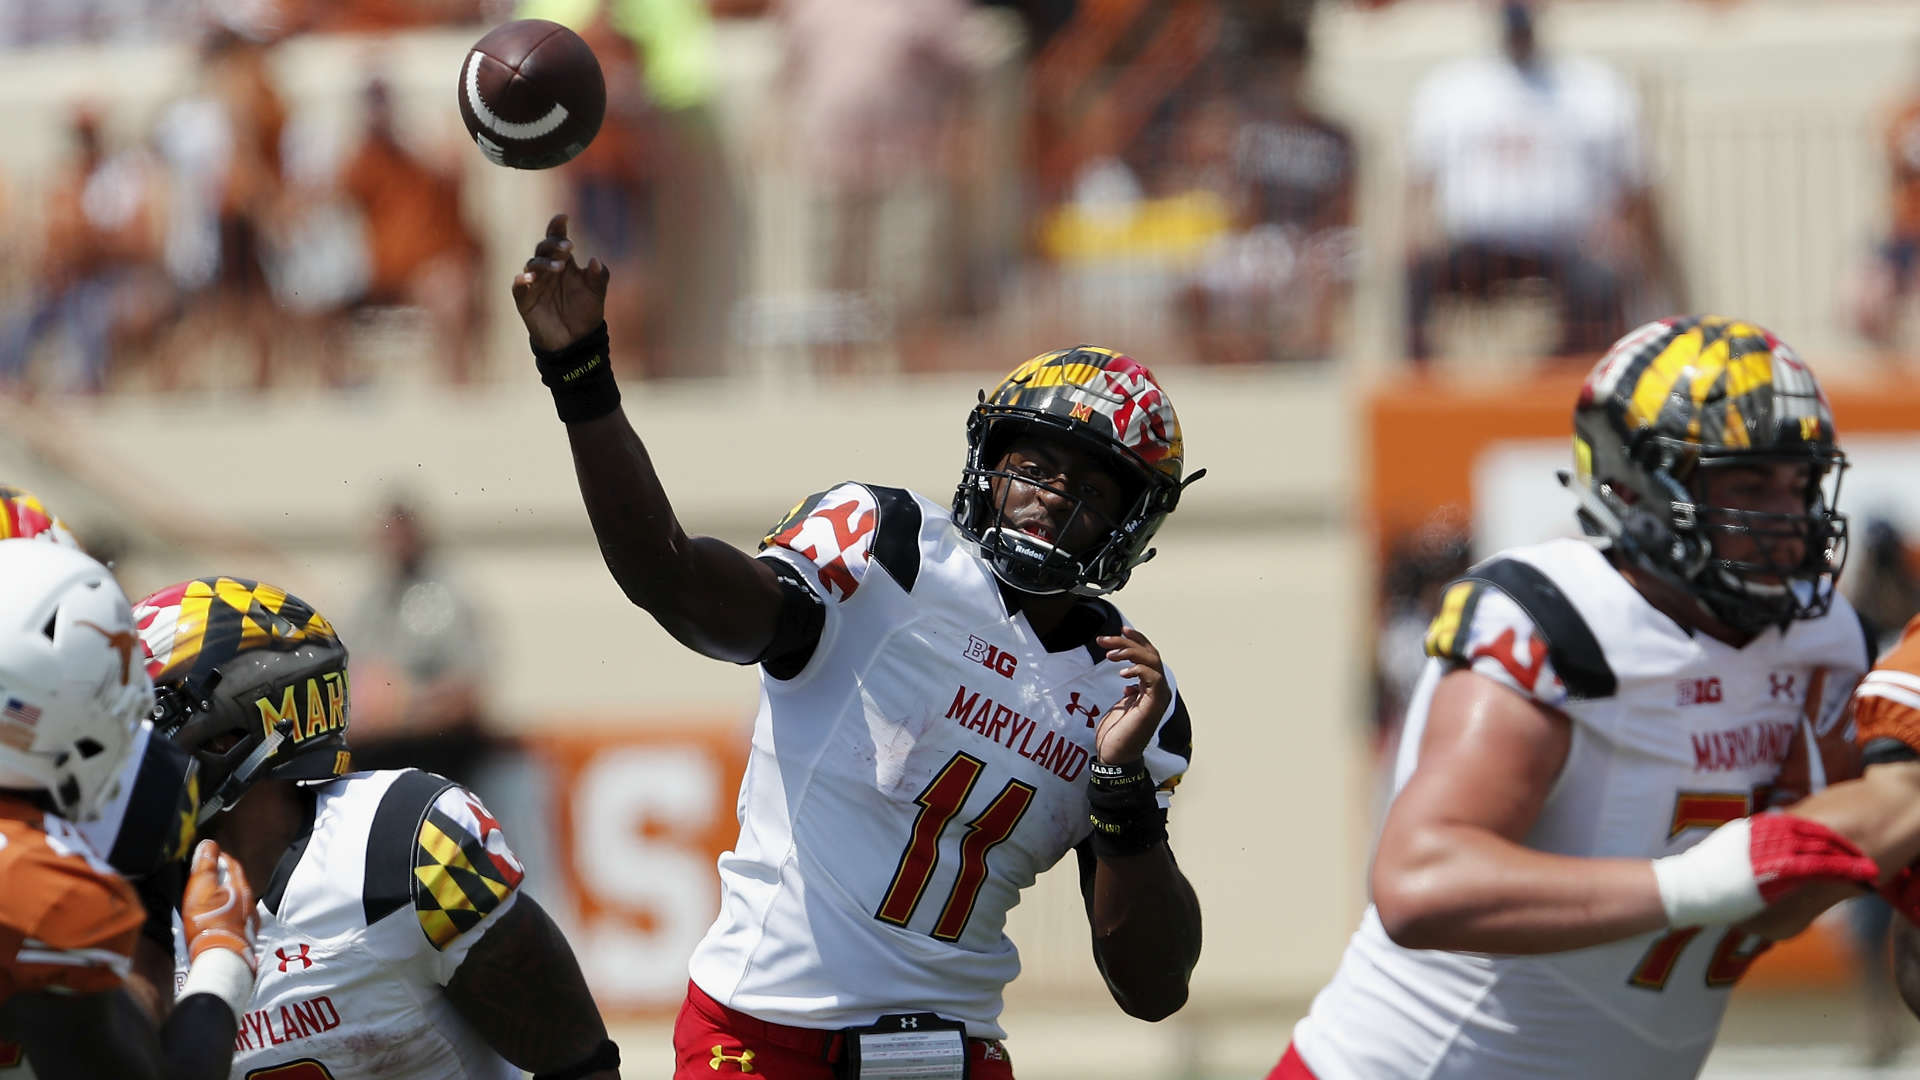 Maryland Terrapins having the worst luck with quarterbacks this season